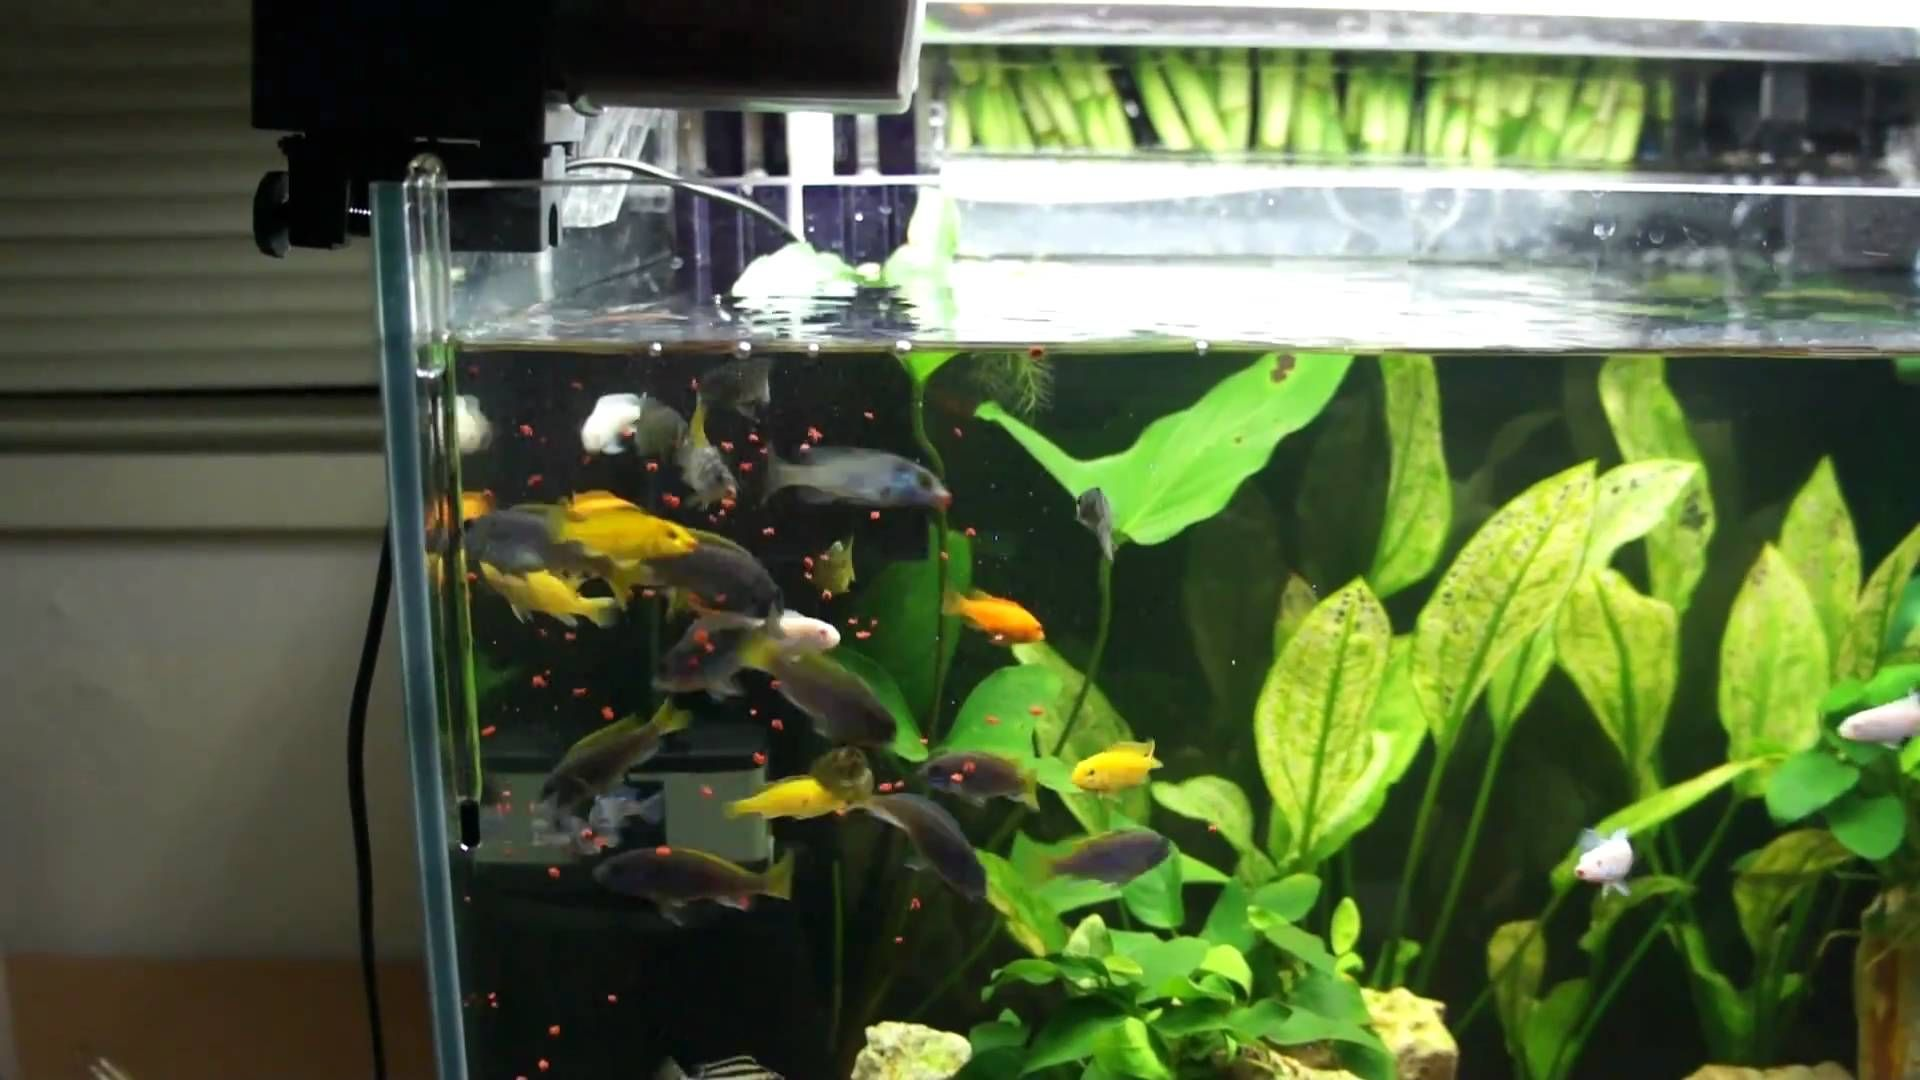 Best Automatic Fish Feeders No Vacation Worries Fish Feeders Automatic Fish Feeder Home Aquarium